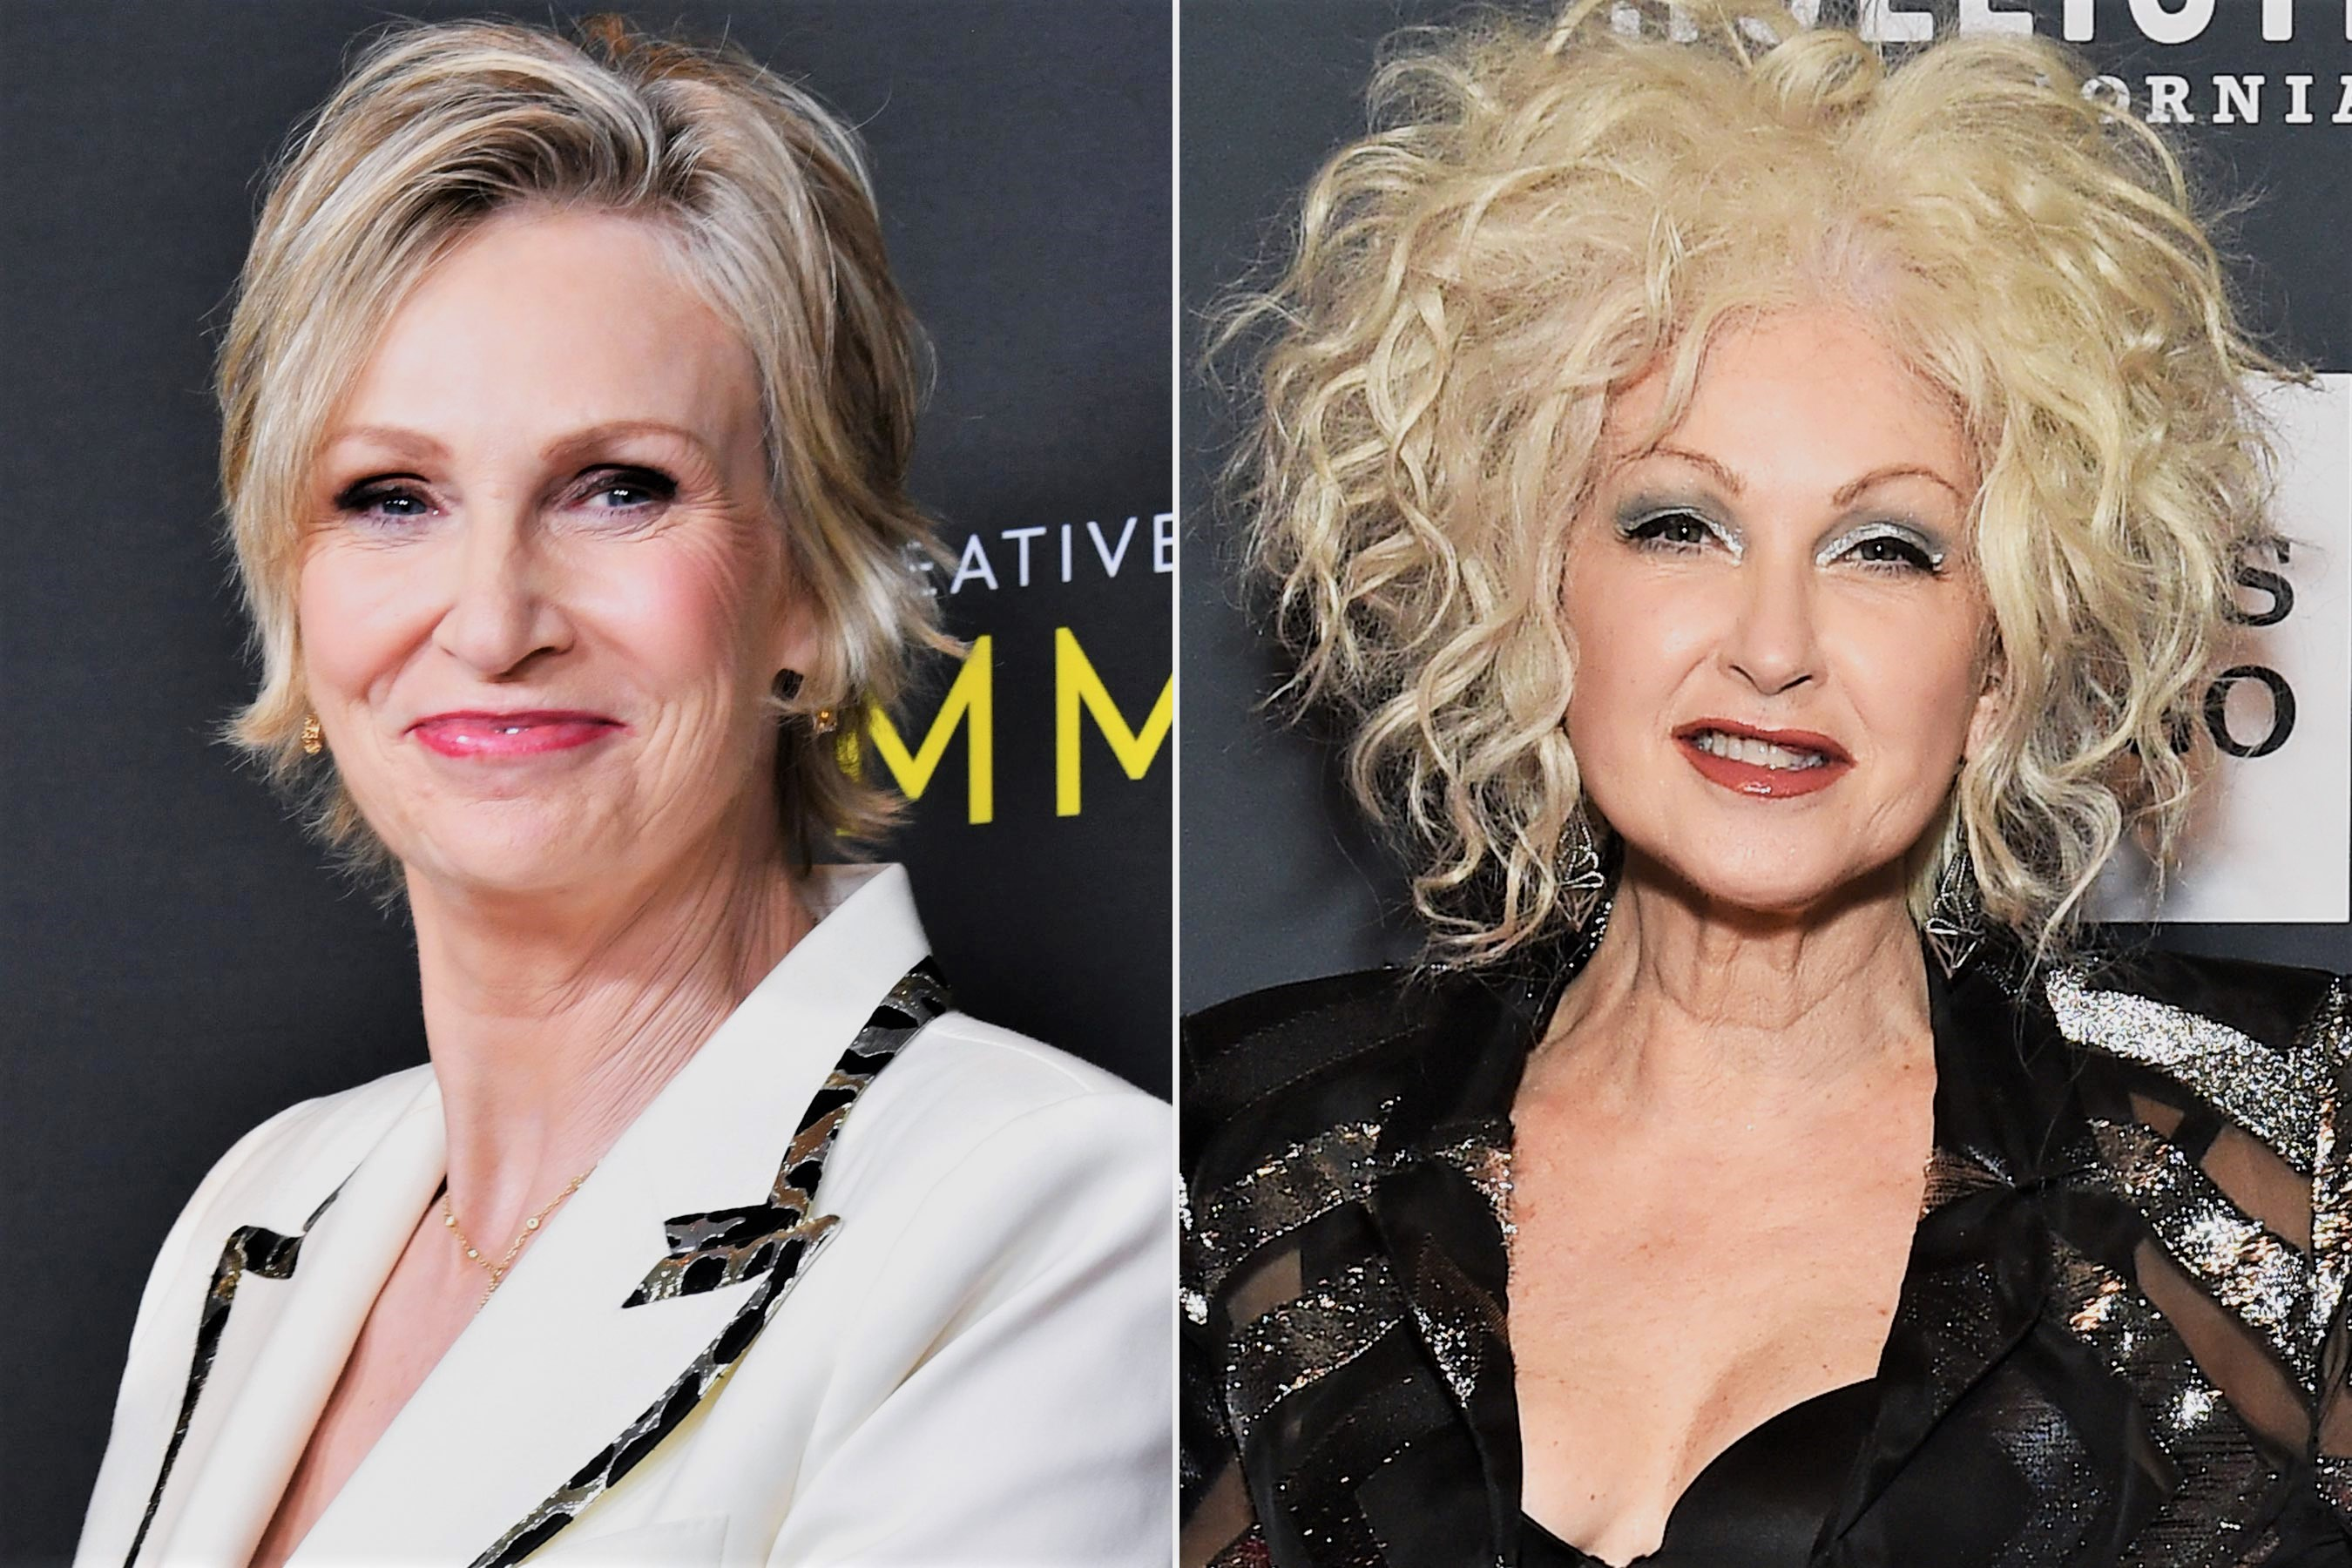 Jane Lynch and Cyndi Lauper